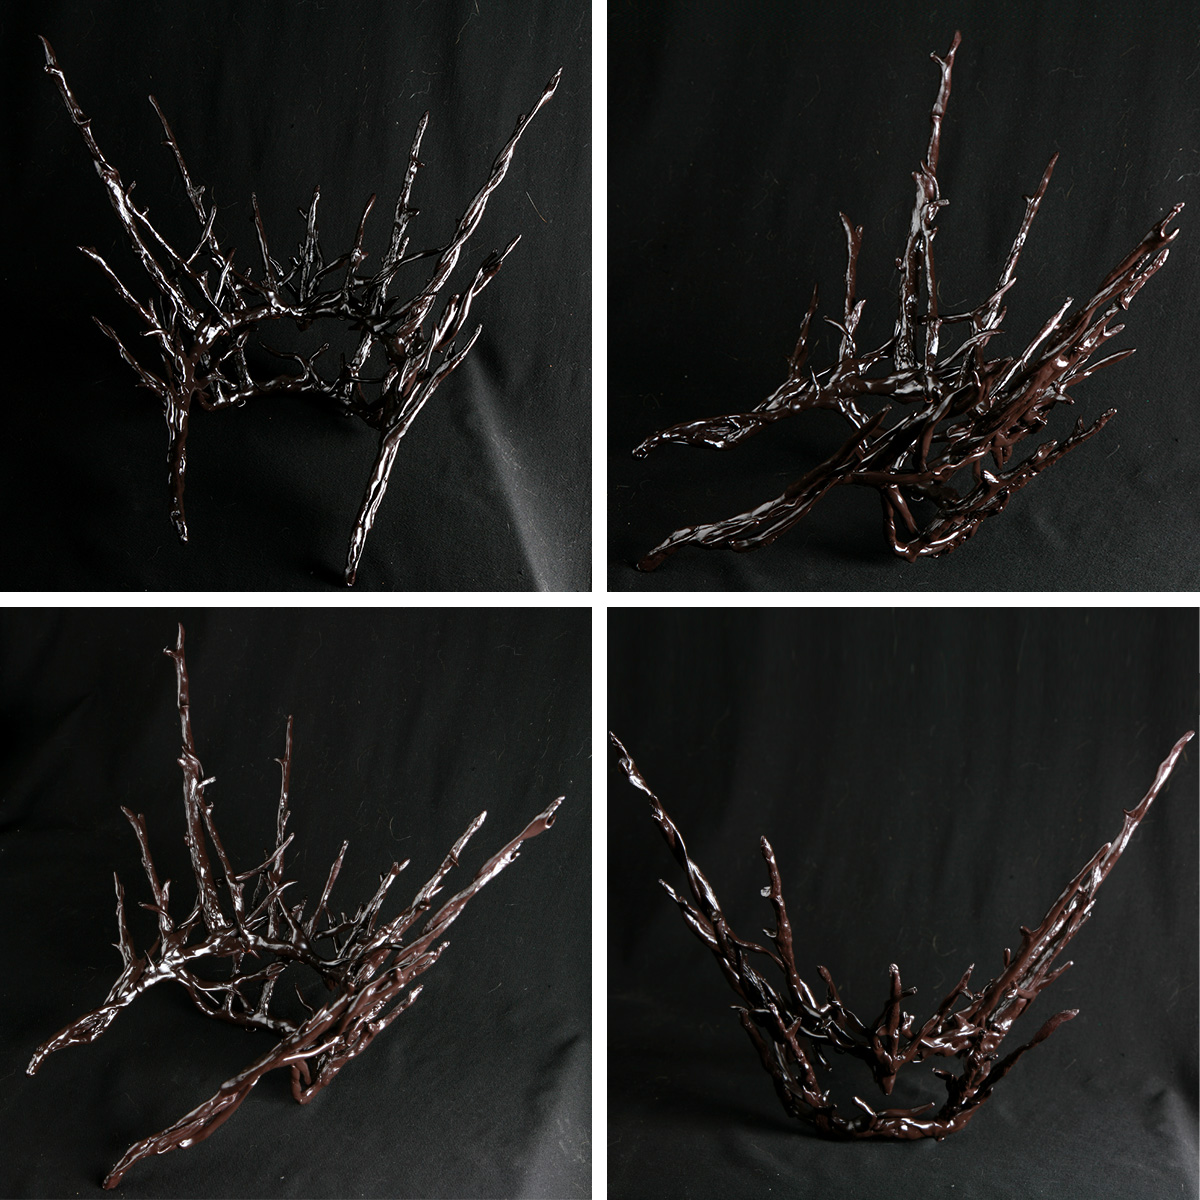 A 4 part image showing multiple views of a plastic replica of Thranduil's crown, painted dark brown.